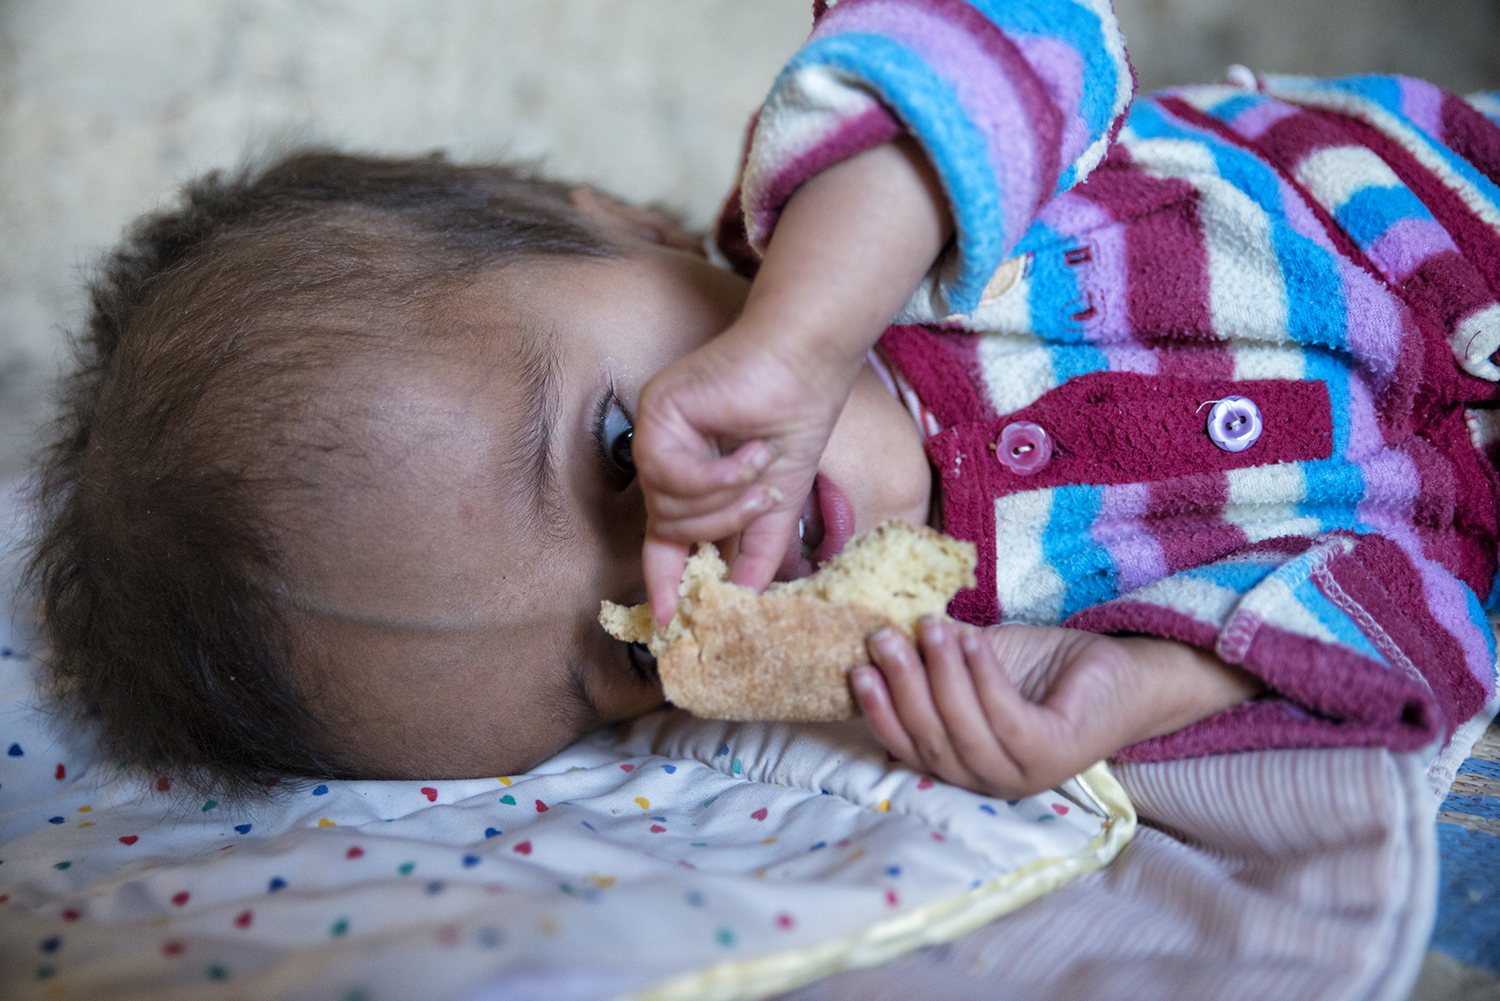 - Hayat suffered from hydrocephalus.His parents are first cousins. He died at the end of 2014. Hayat was the third child who died prematurely. Currently they have left a child of two years, who is apparently healthy.